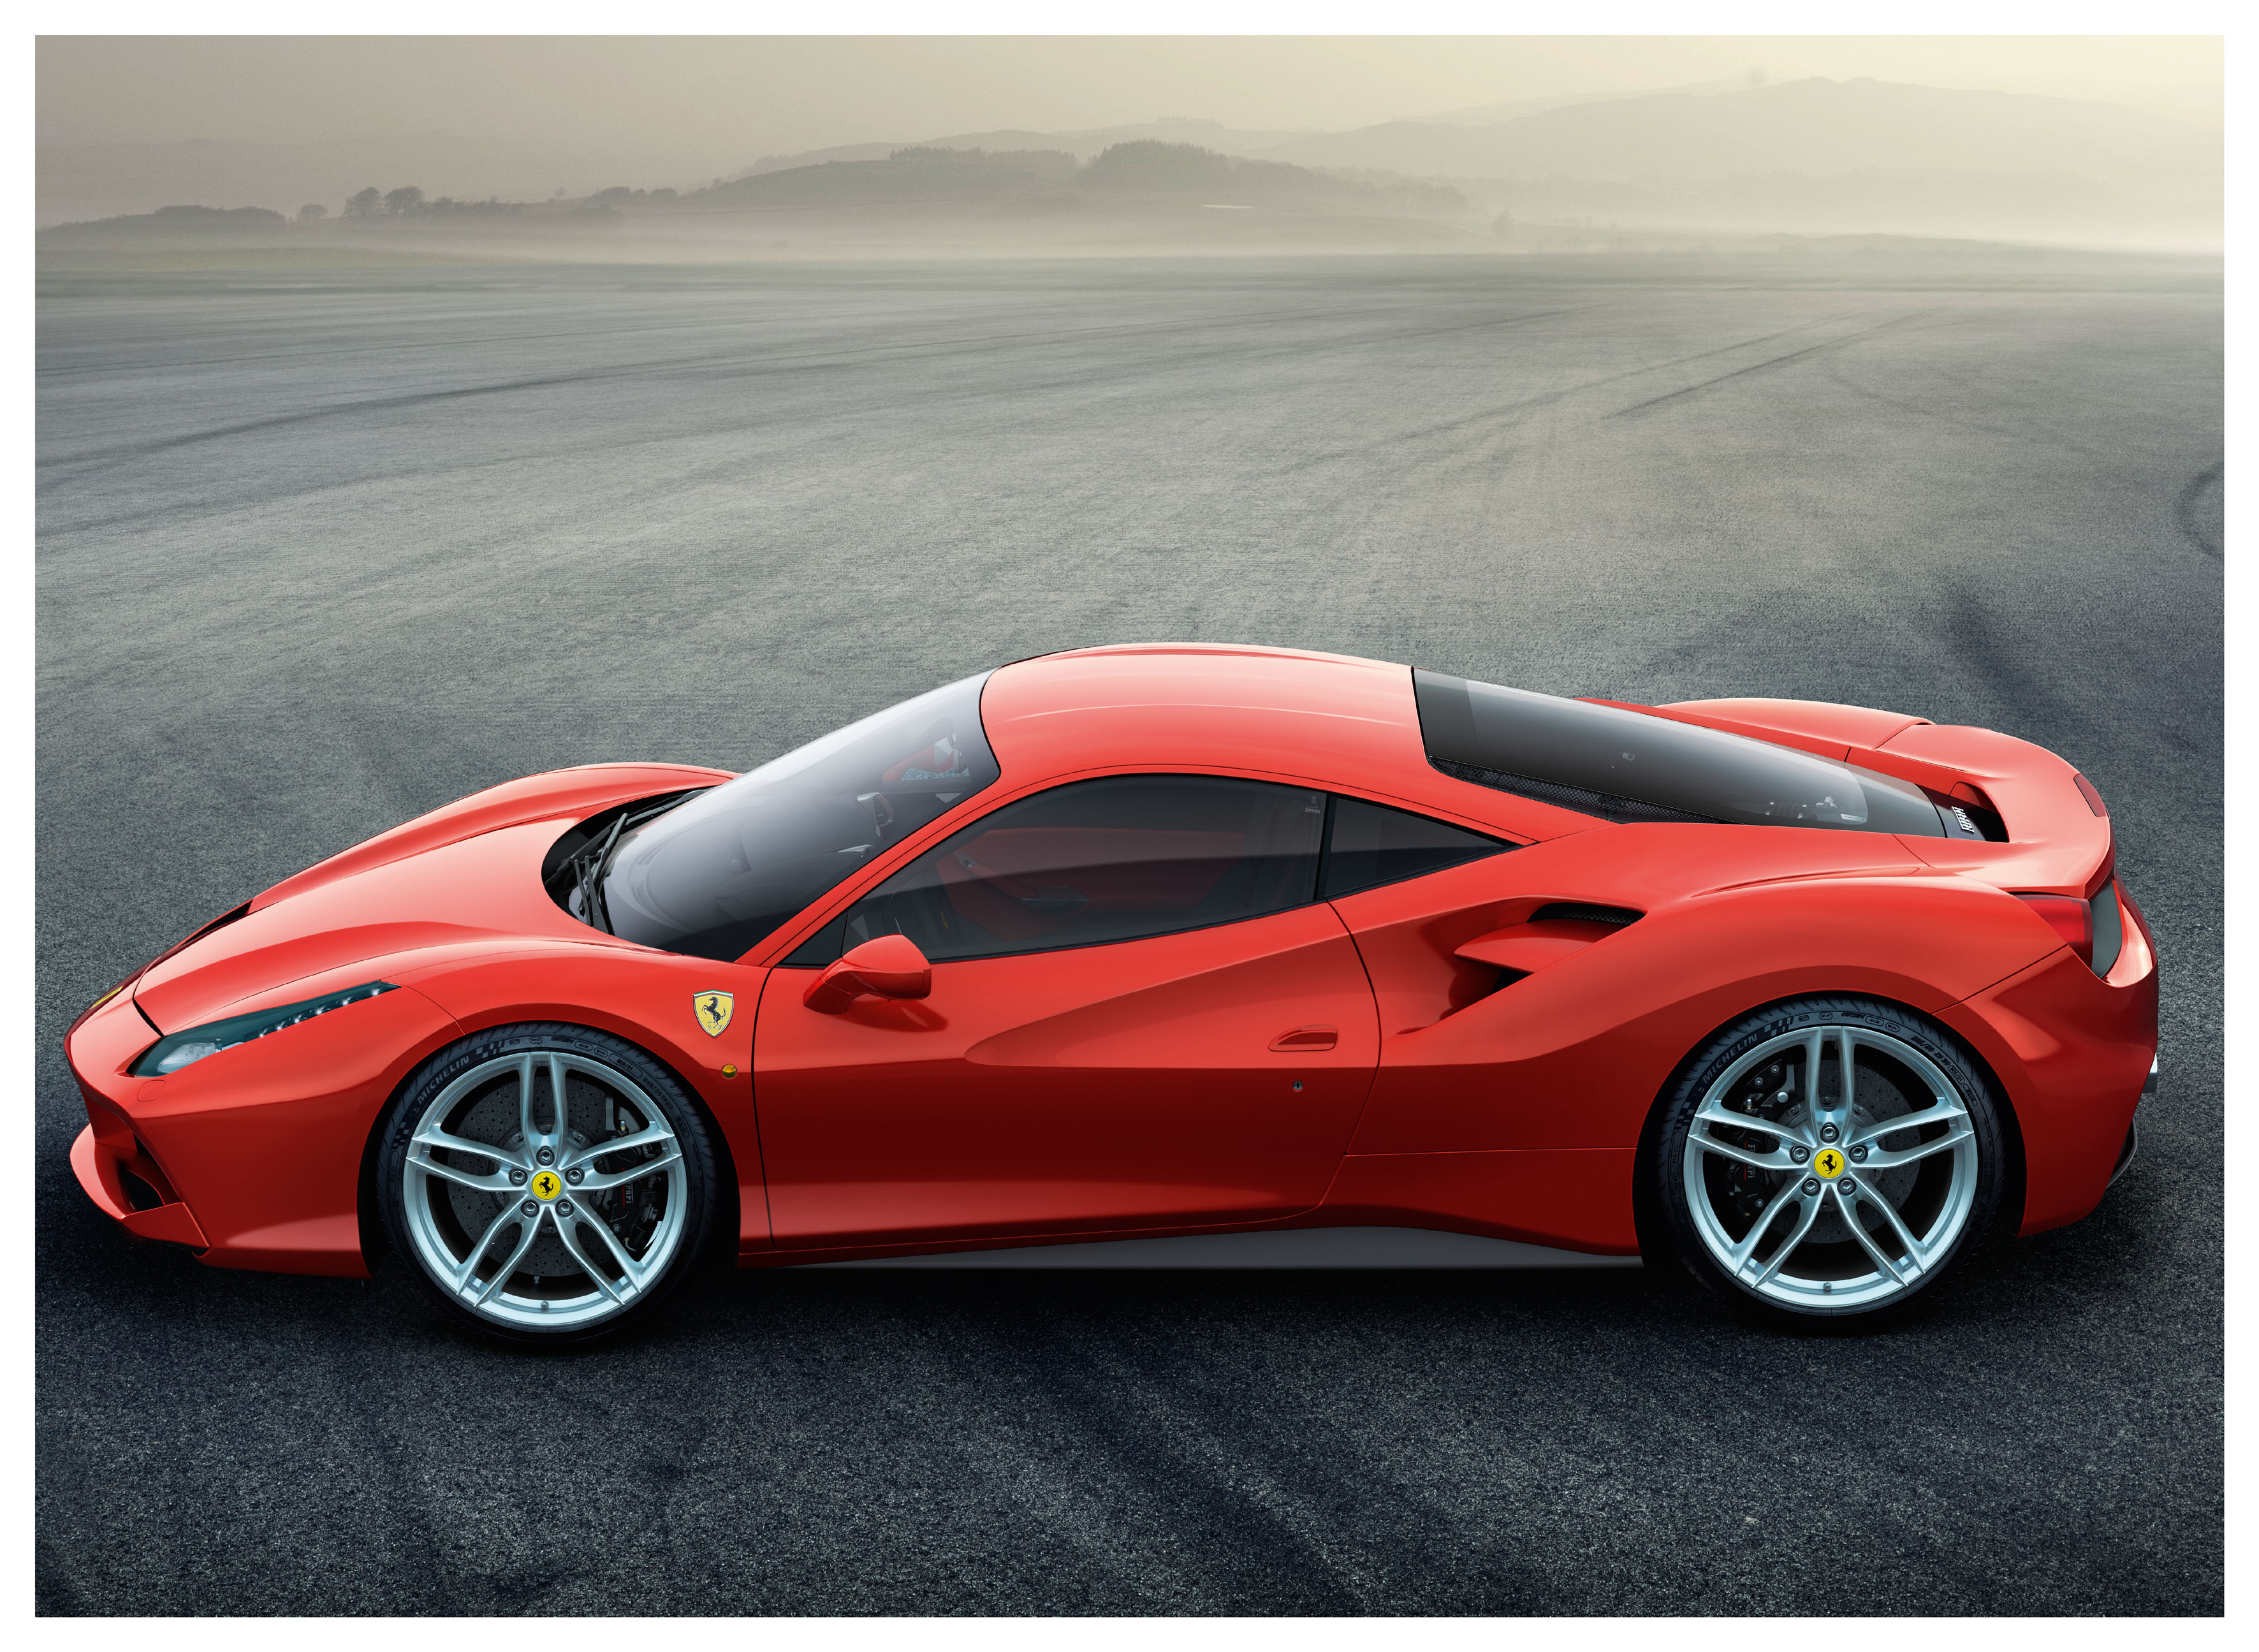 ferrari 488 gtb extreme power for extreme driving thrills. Black Bedroom Furniture Sets. Home Design Ideas